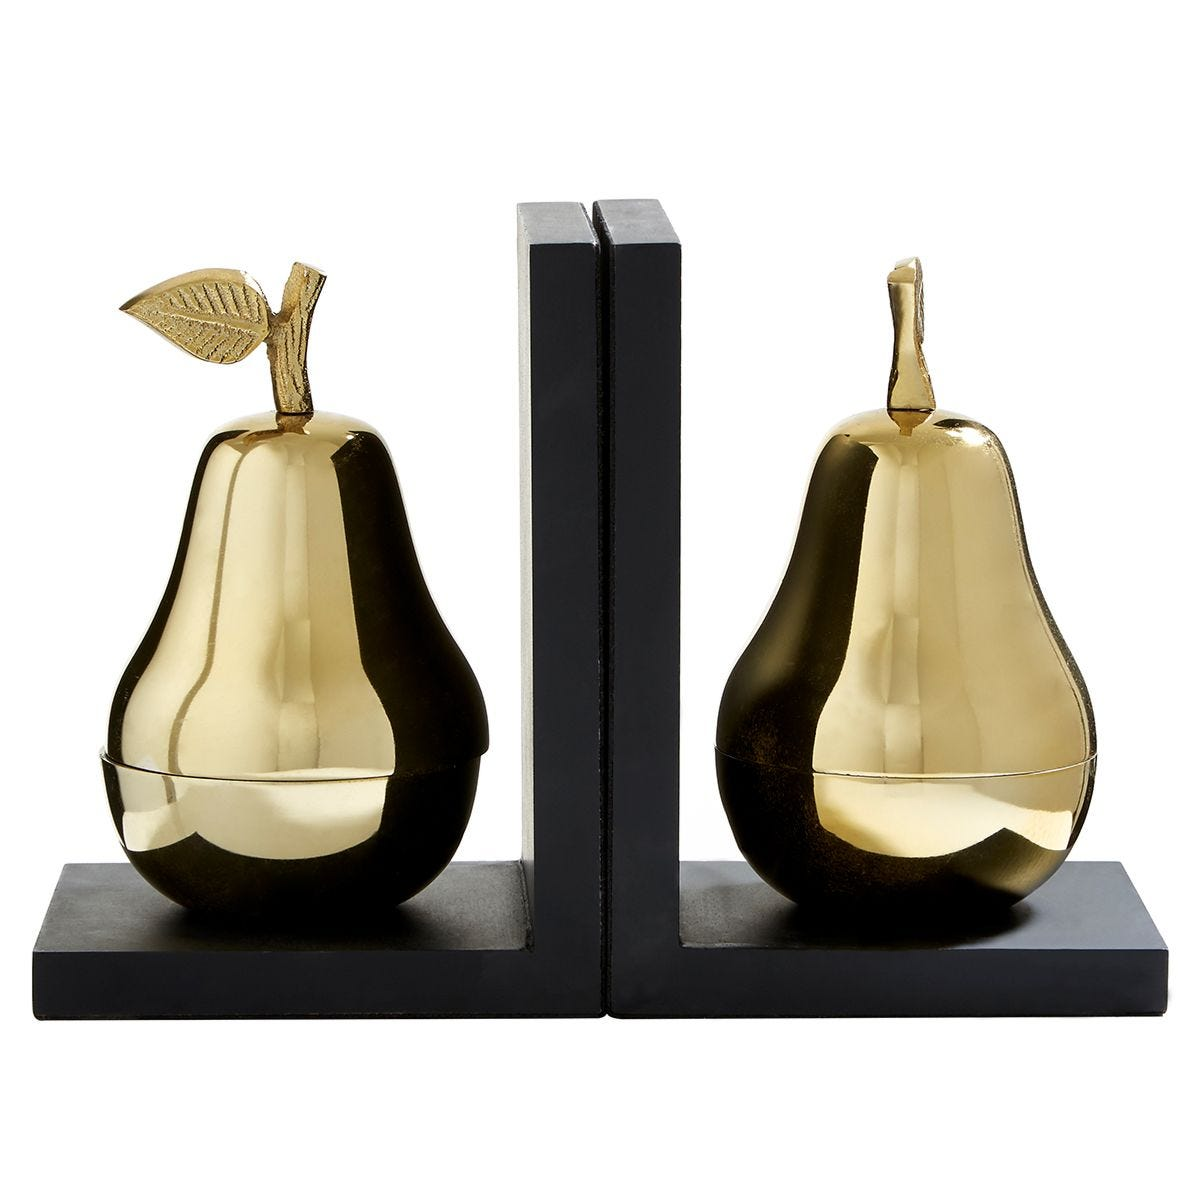 Premier Housewares Pear Set of 2 Bookends in Gold/Black Finish